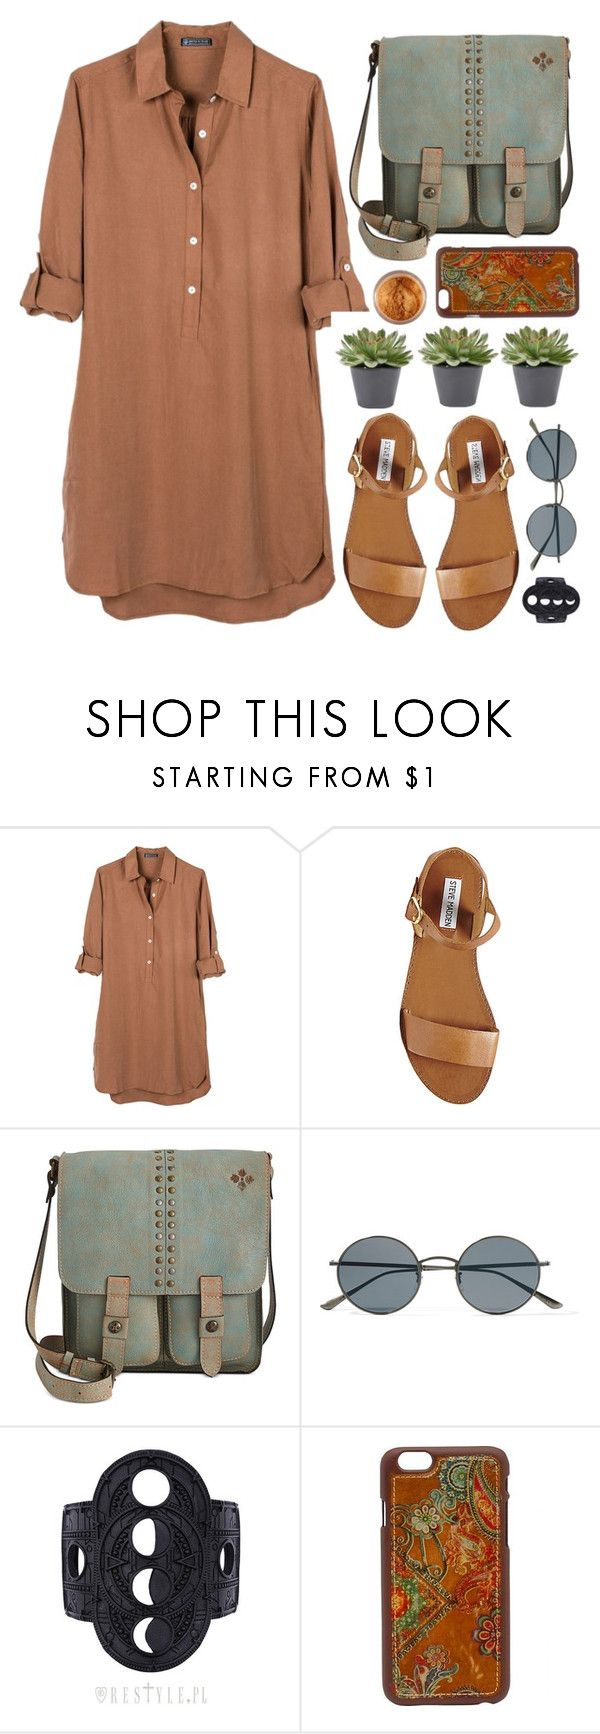 """Dreshirt"" by time-new-roman ❤ liked on Polyvore featuring United by Blue, Steve Madden, Patricia Nash, Oliver Peoples and Blazin Roxx"